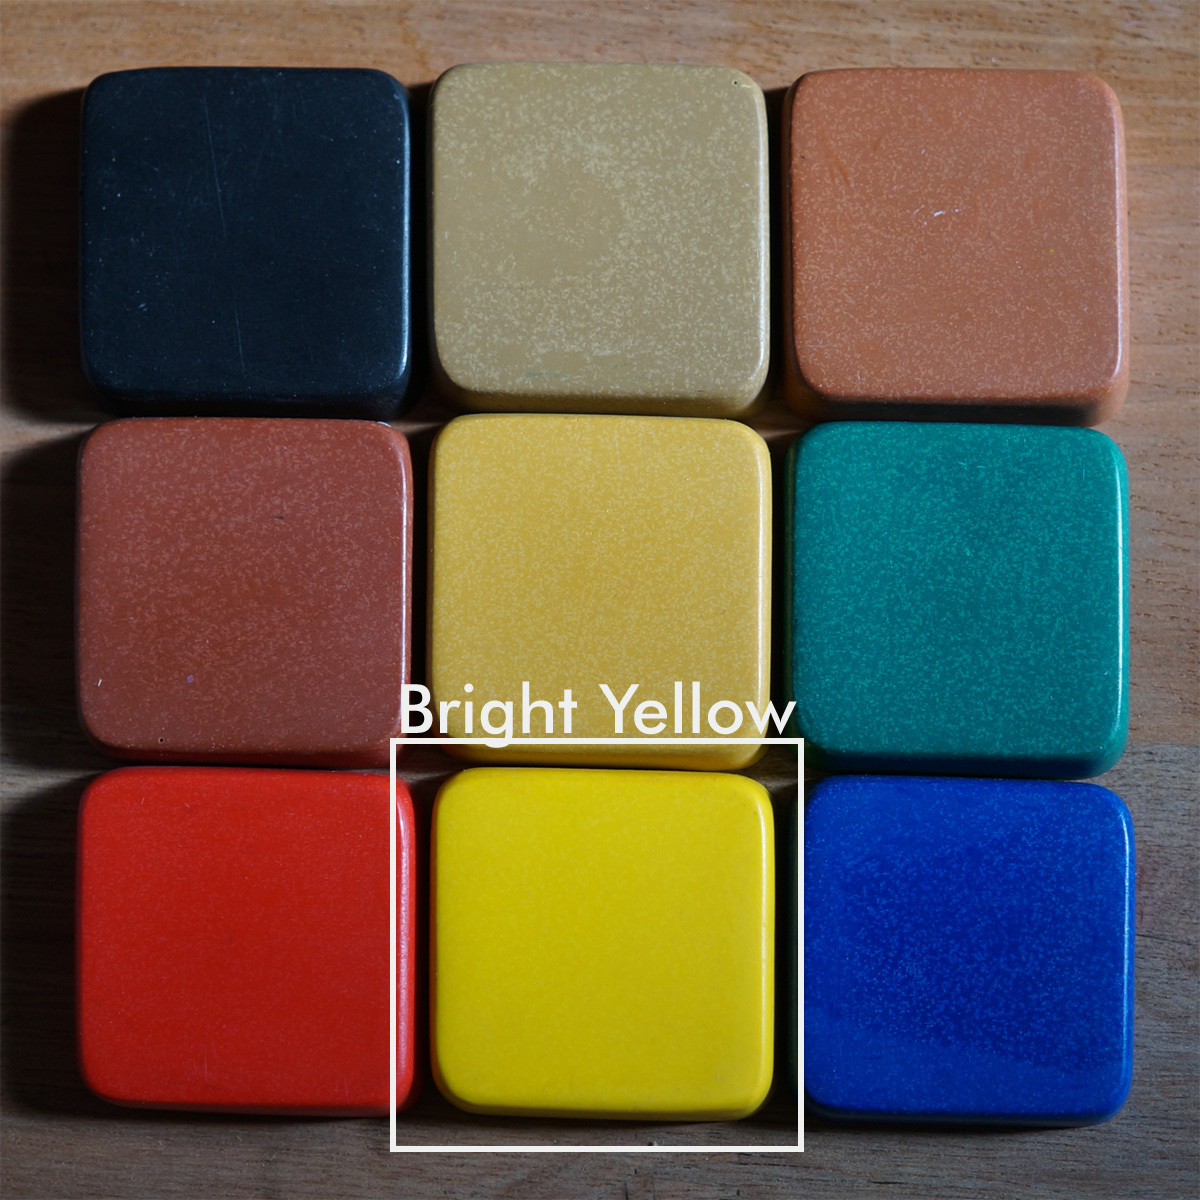 PIGMENT BRIGHT YELLOW 300g(着色剤:黄 300g) - 画像2